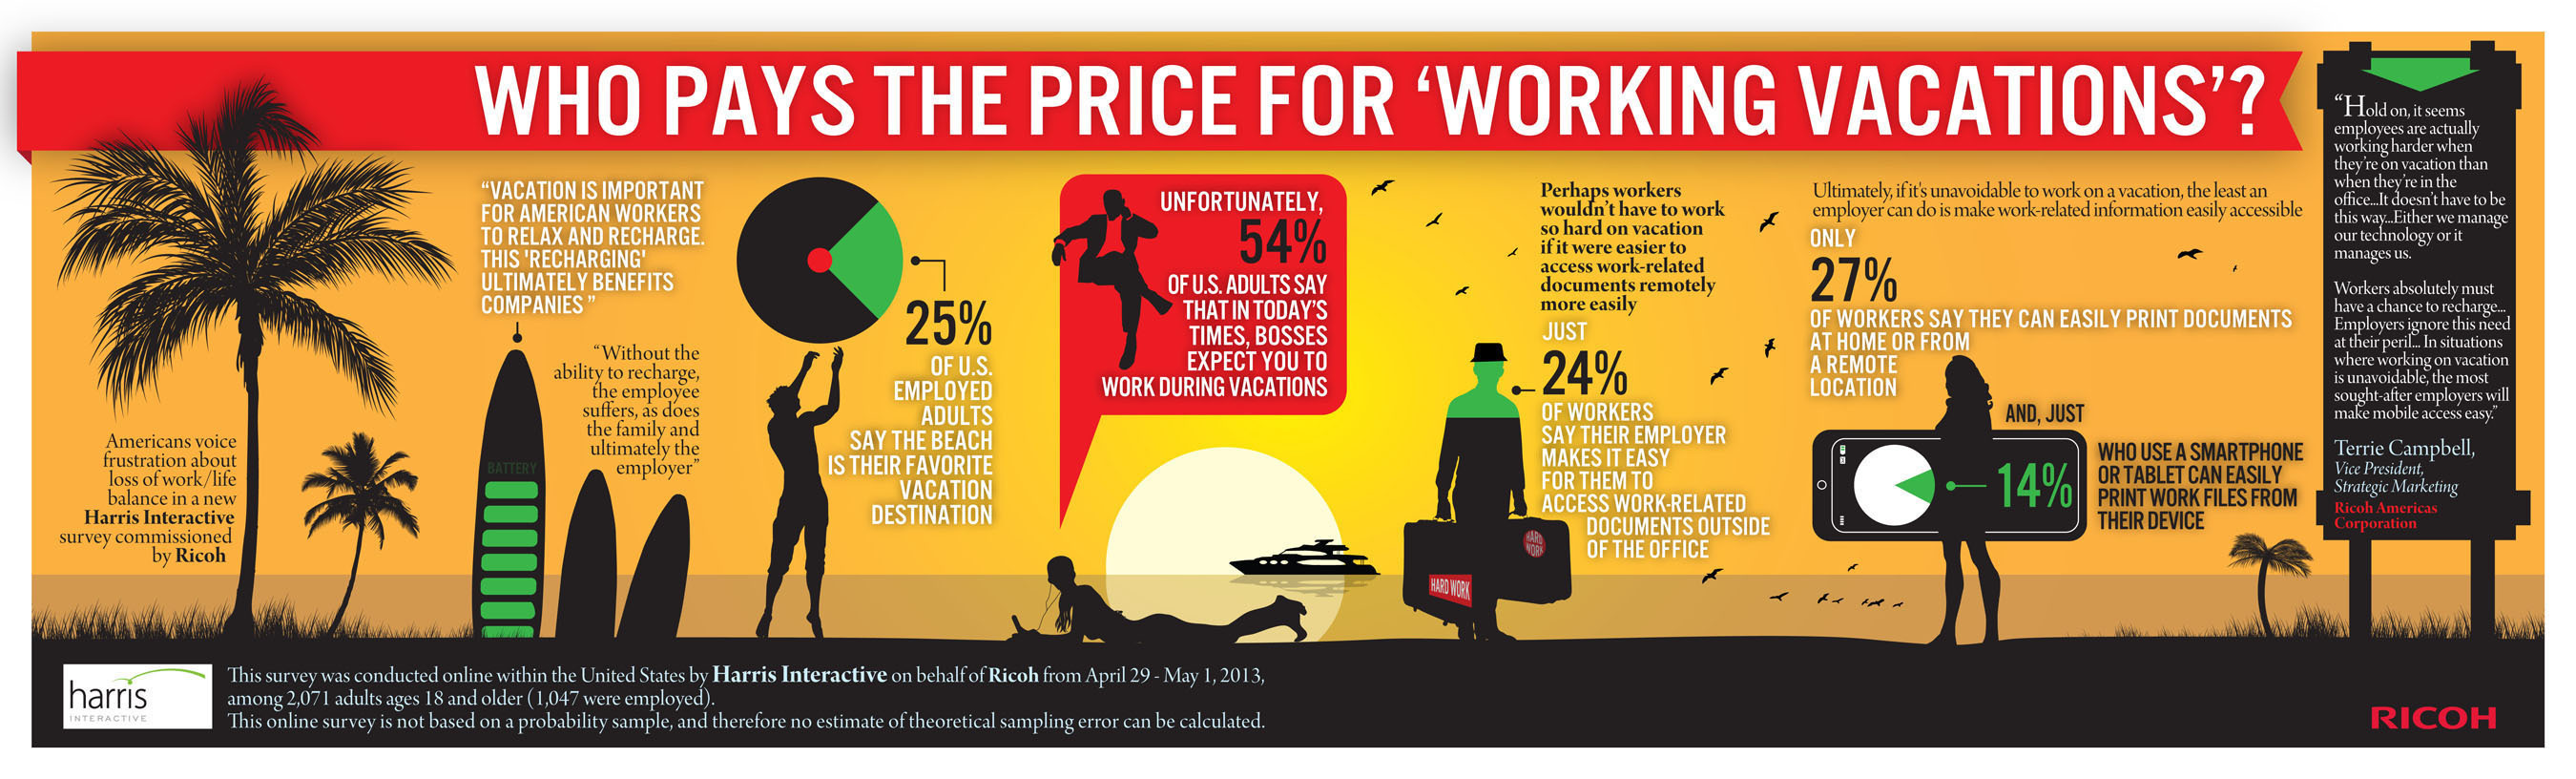 Who pays the price for 'working vacations'? Americans voice frustration about loss of work/life balance  ...